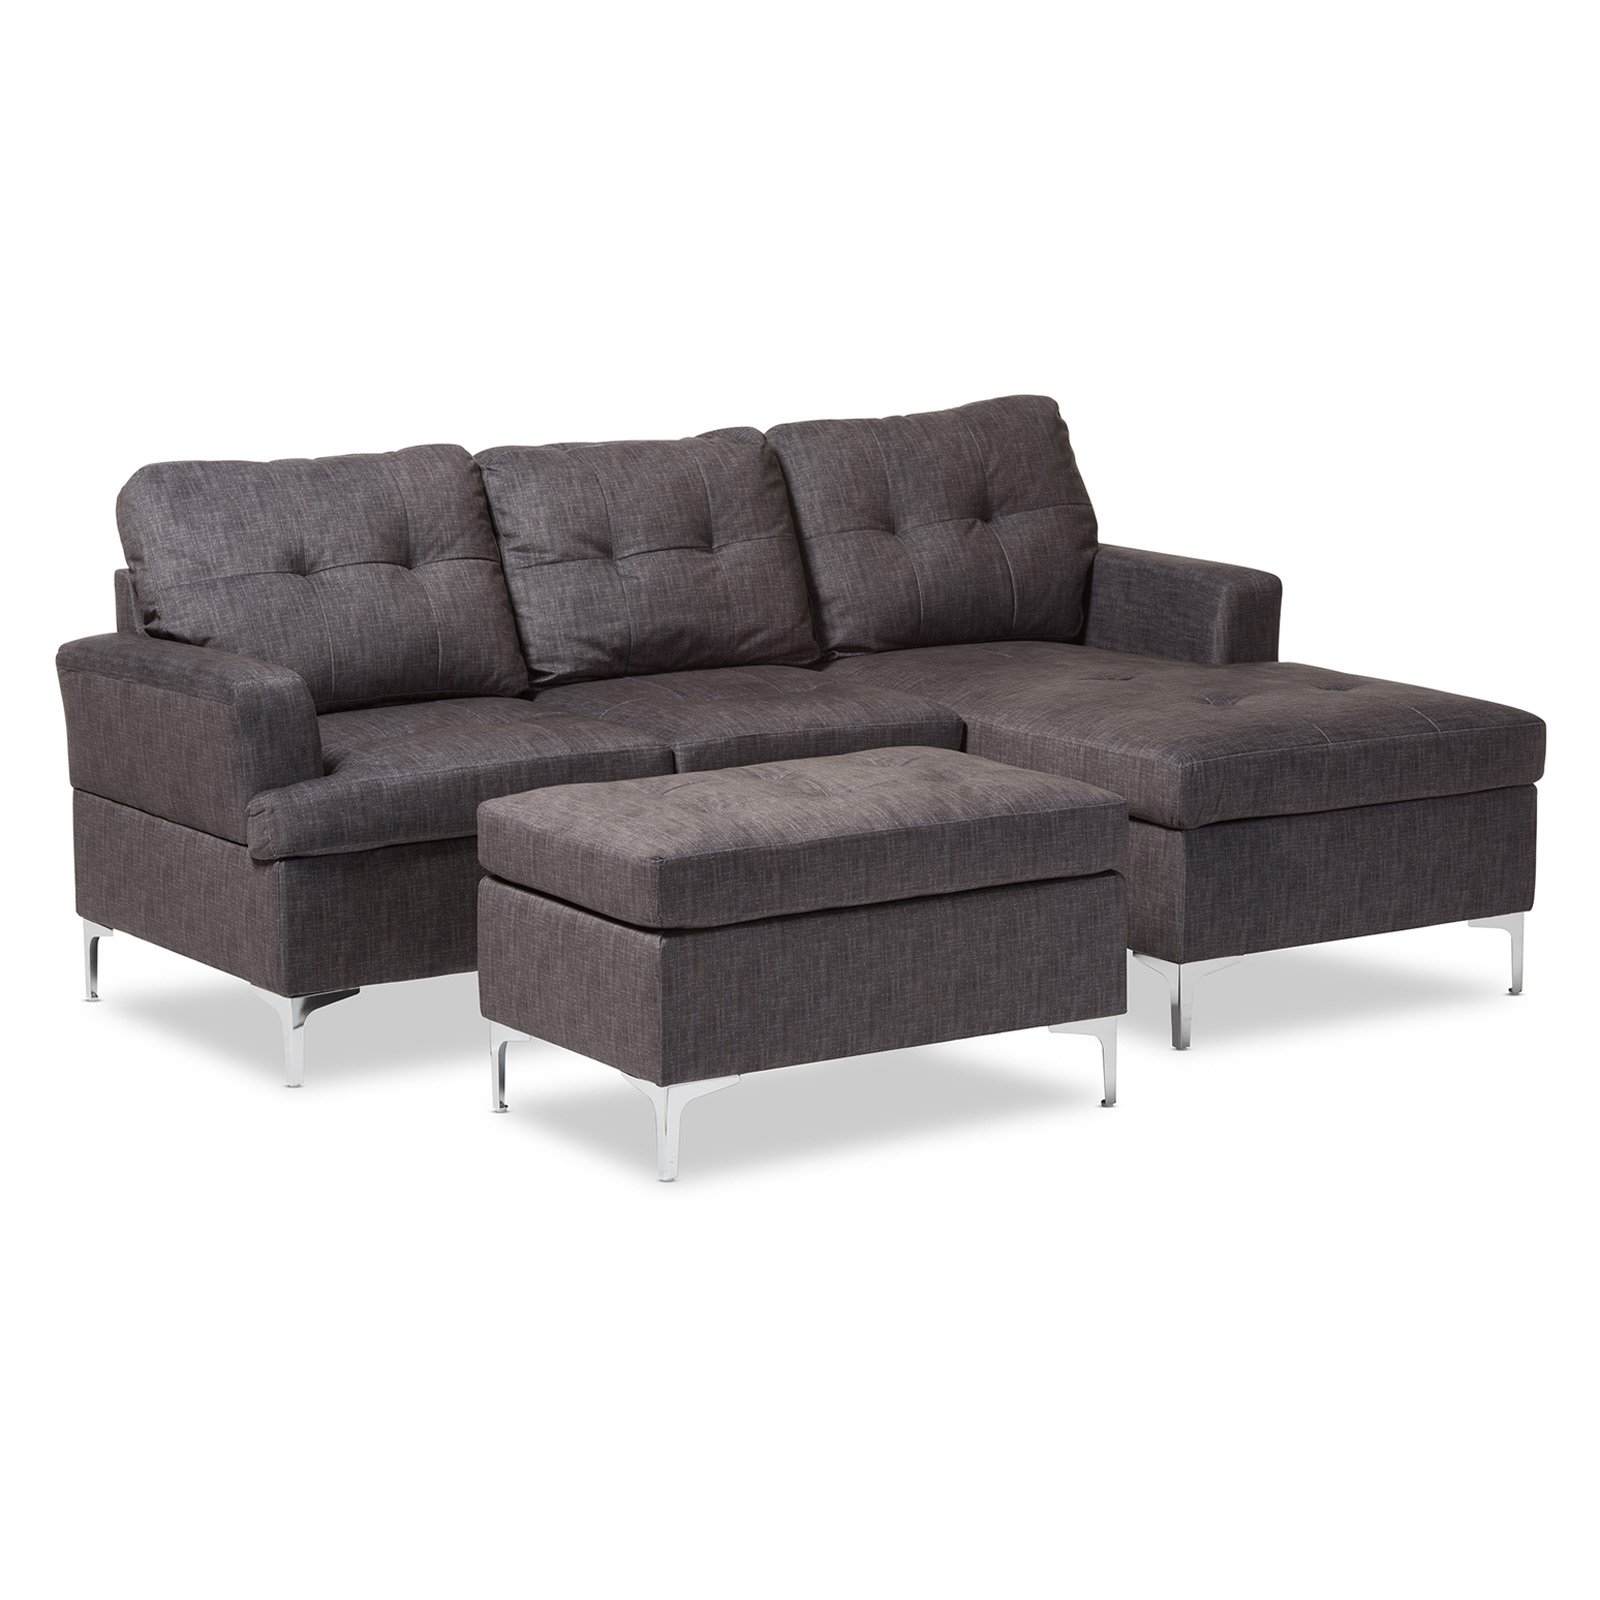 Riley Modern and Contemporary Fabric Upholstered 3 - Piece Sectional Sofa with Ottoman Set - Gray - Baxton Studio